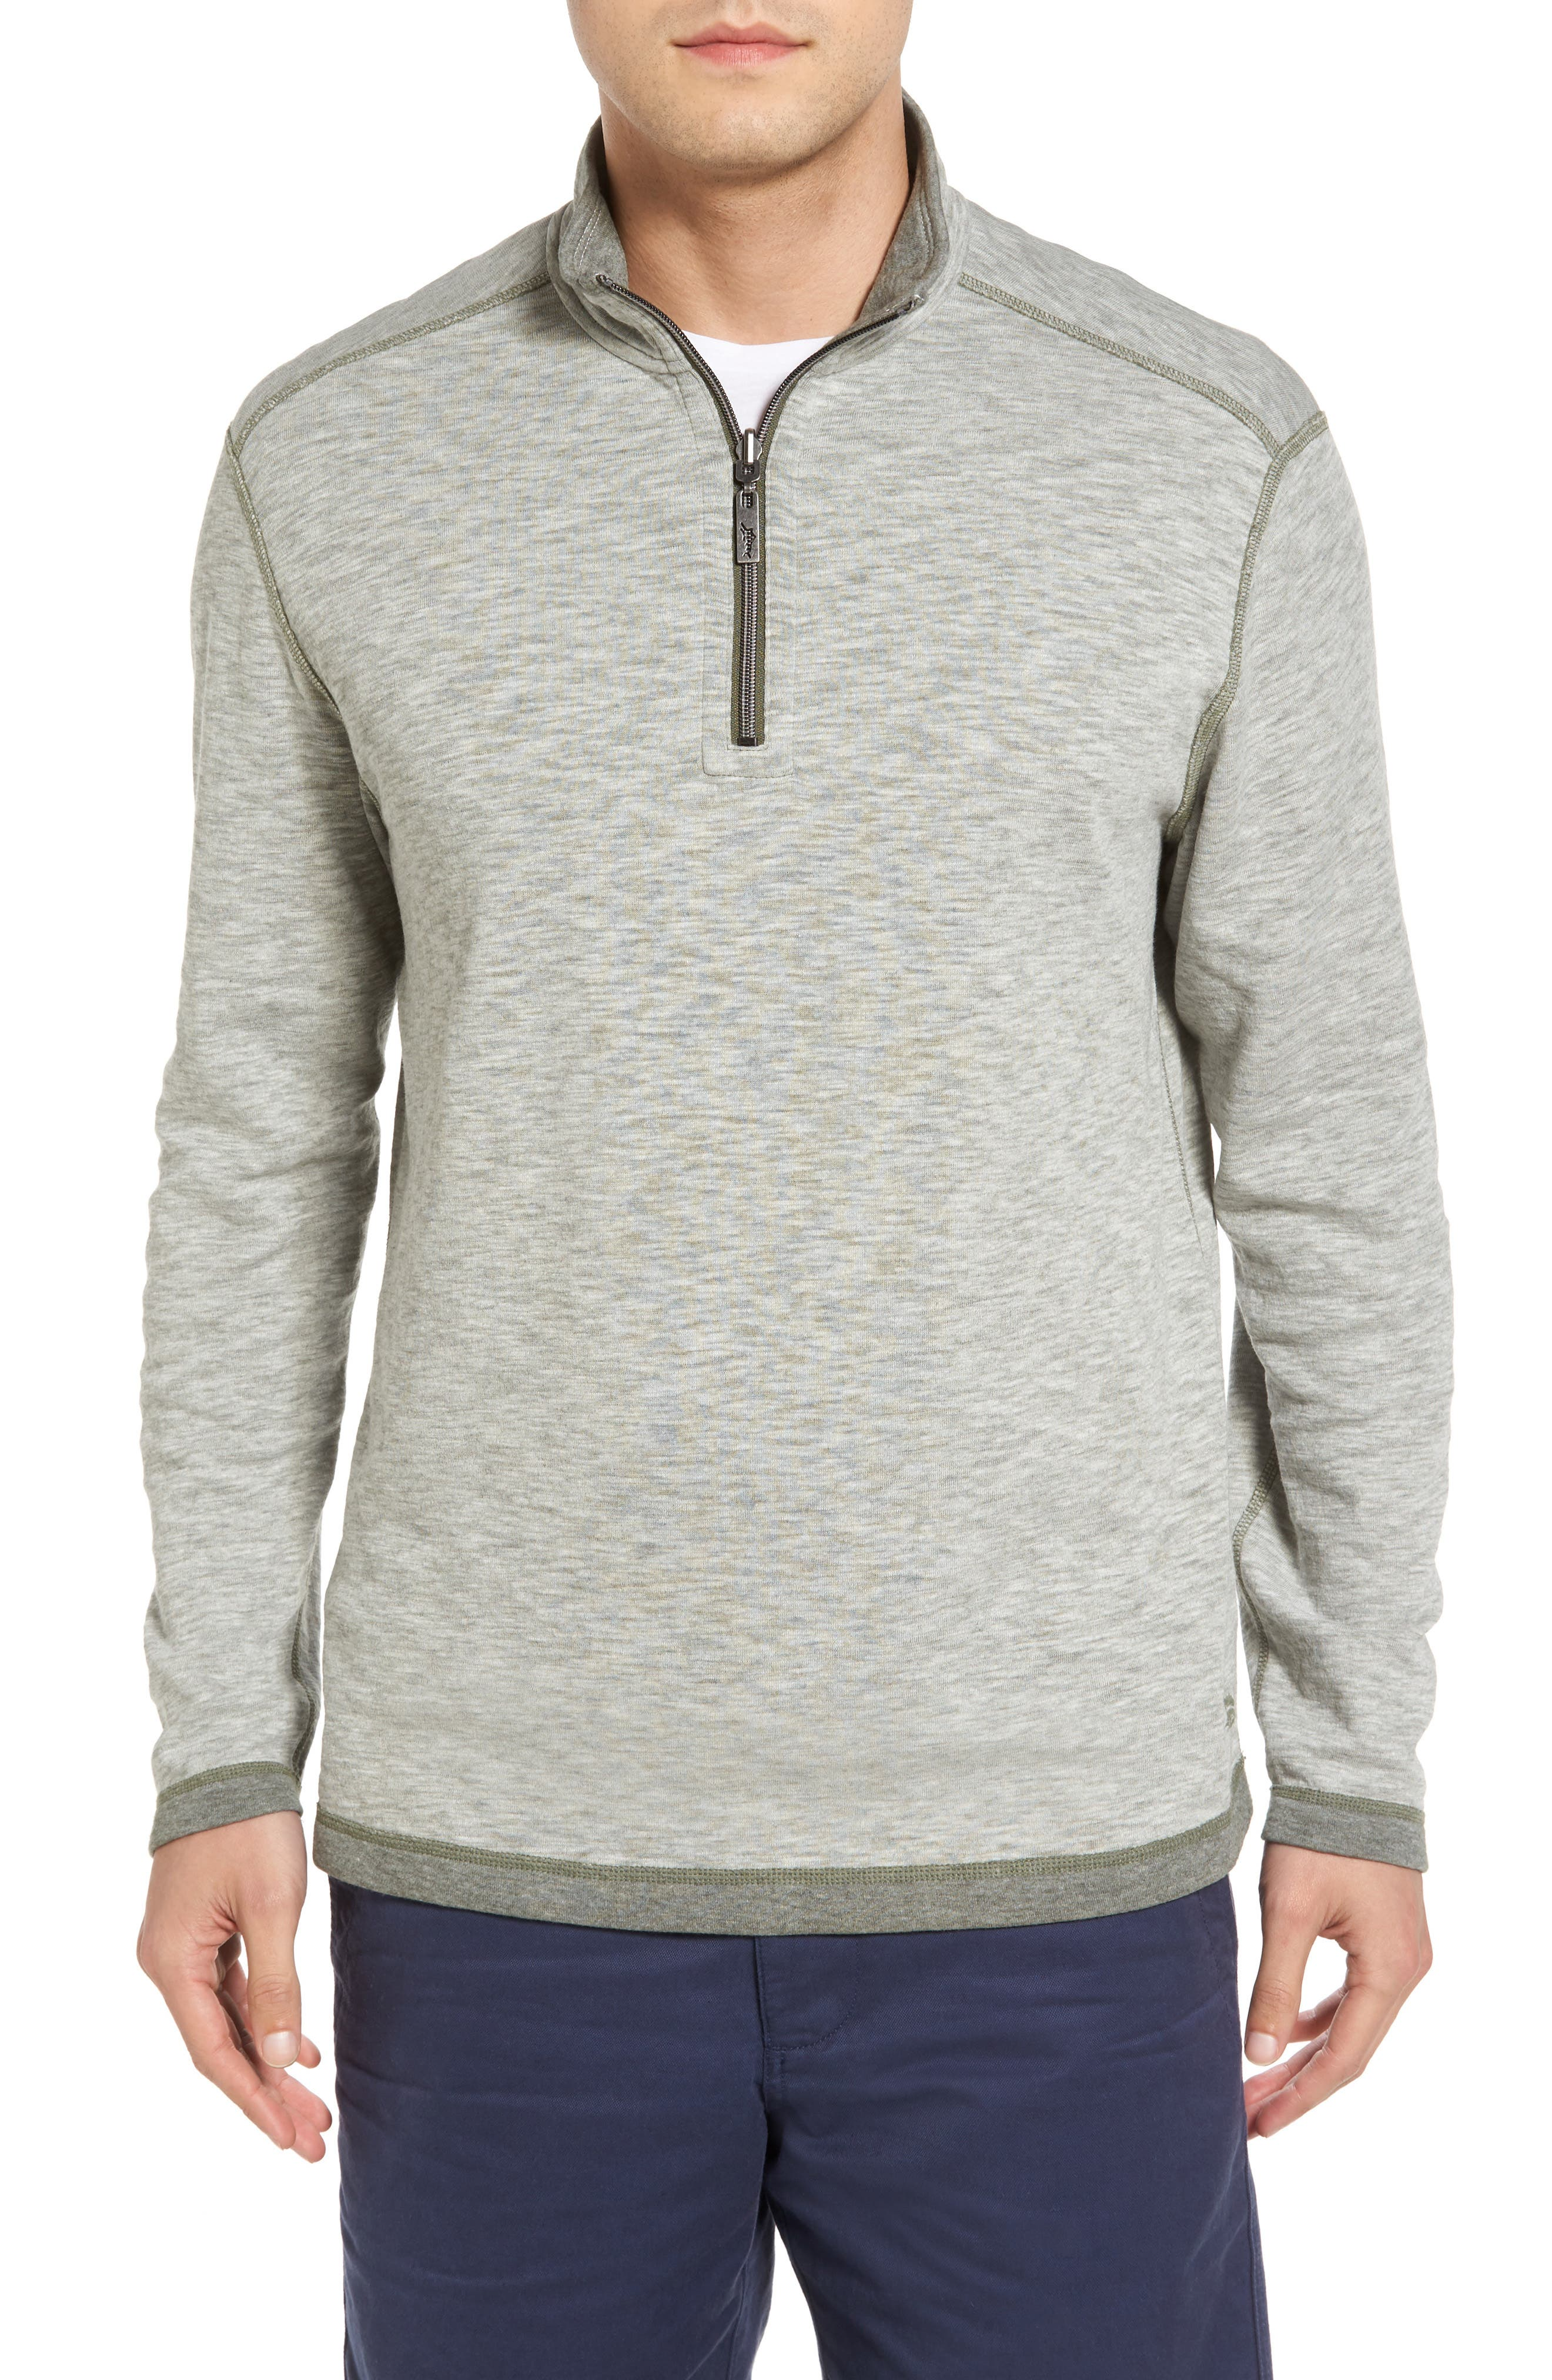 Alternate Image 1 Selected - Tommy Bahama Sea Glass Reversible Quarter Zip Pullover